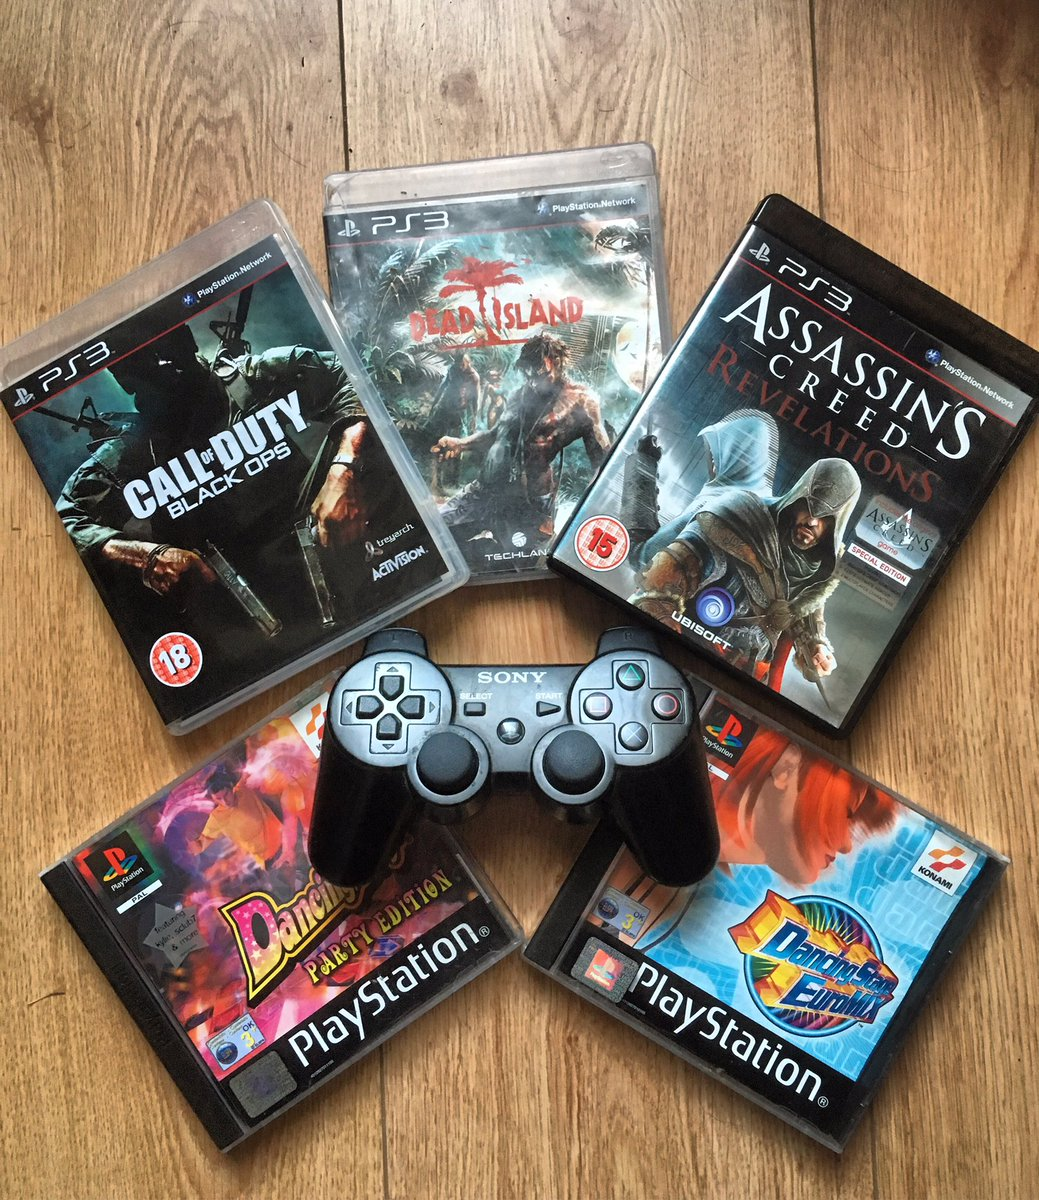 Another recent pickup when I was out on my travels. Separated by console generation and very different gaming styles represented in this little lot #PlayStation #ps1 #PS3 #AssassinsCreed #CallofDuty #blackops #Retro #RETROGAMING #retrogames #gaming #FPS #fortheplayers #geekpic.twitter.com/yqaayz9lk5